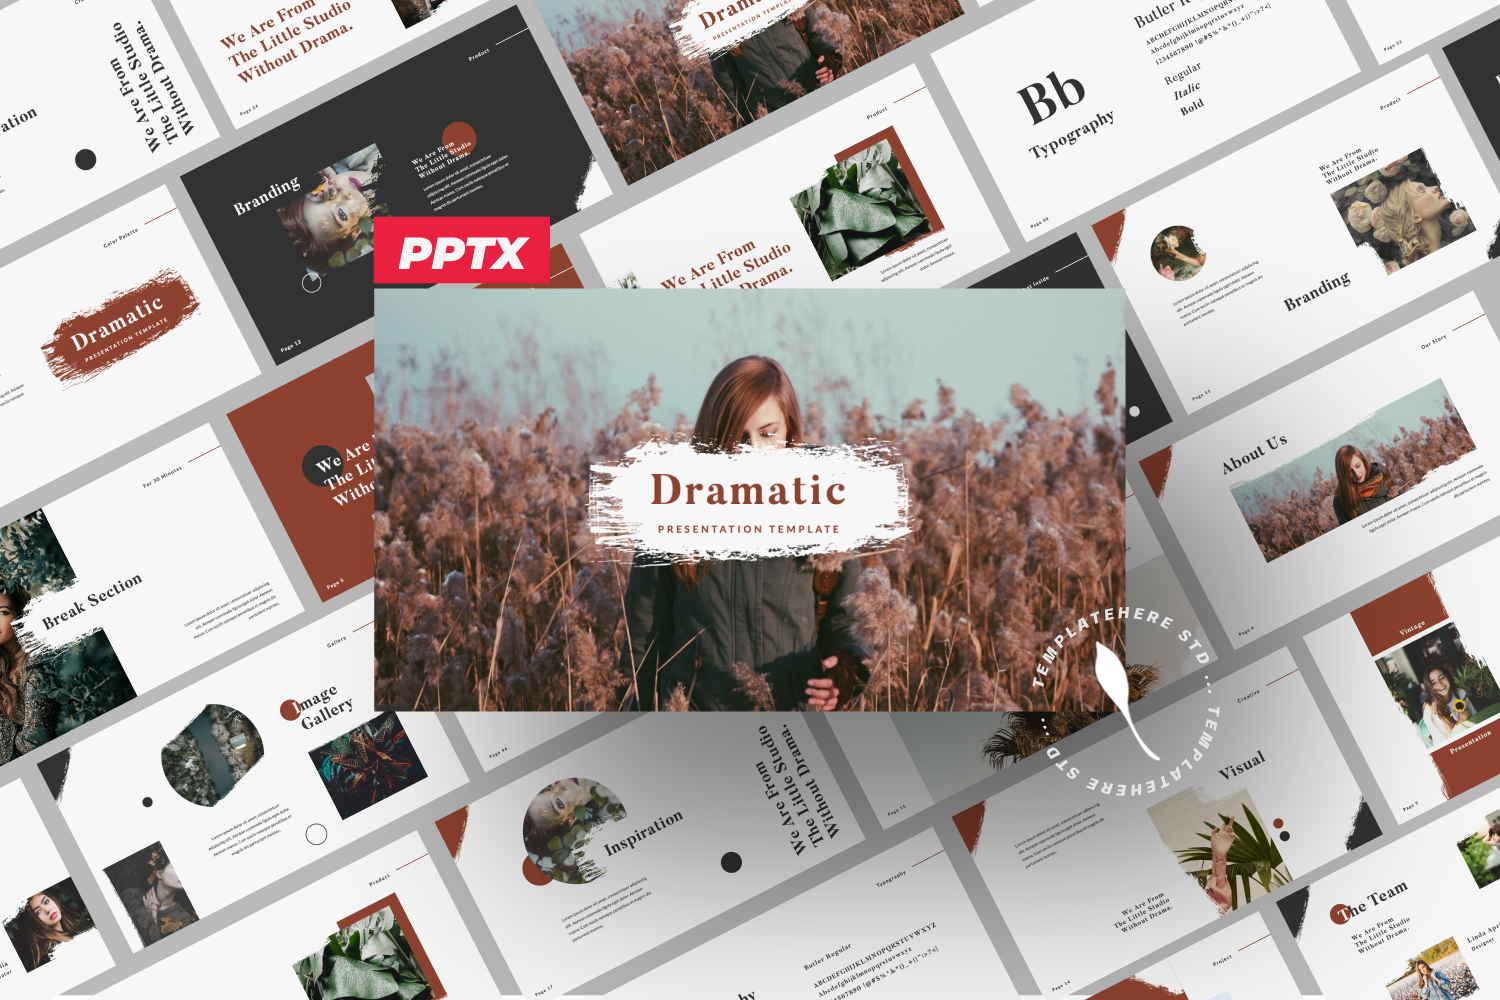 Dramatic - Powerpoint Brand Template